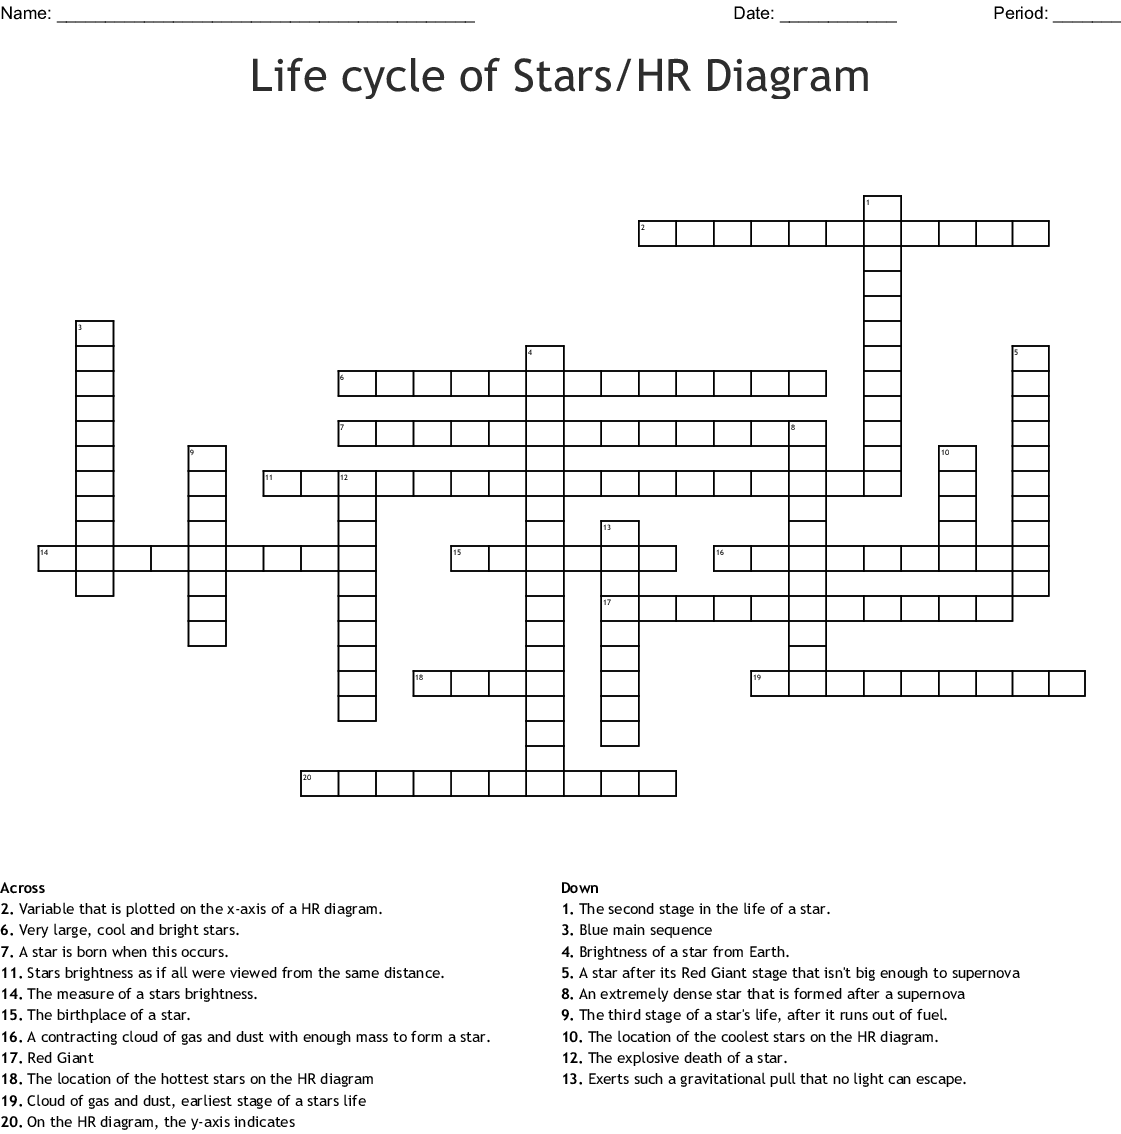 Life Cycle Of Stars Hr Diagram Crossword